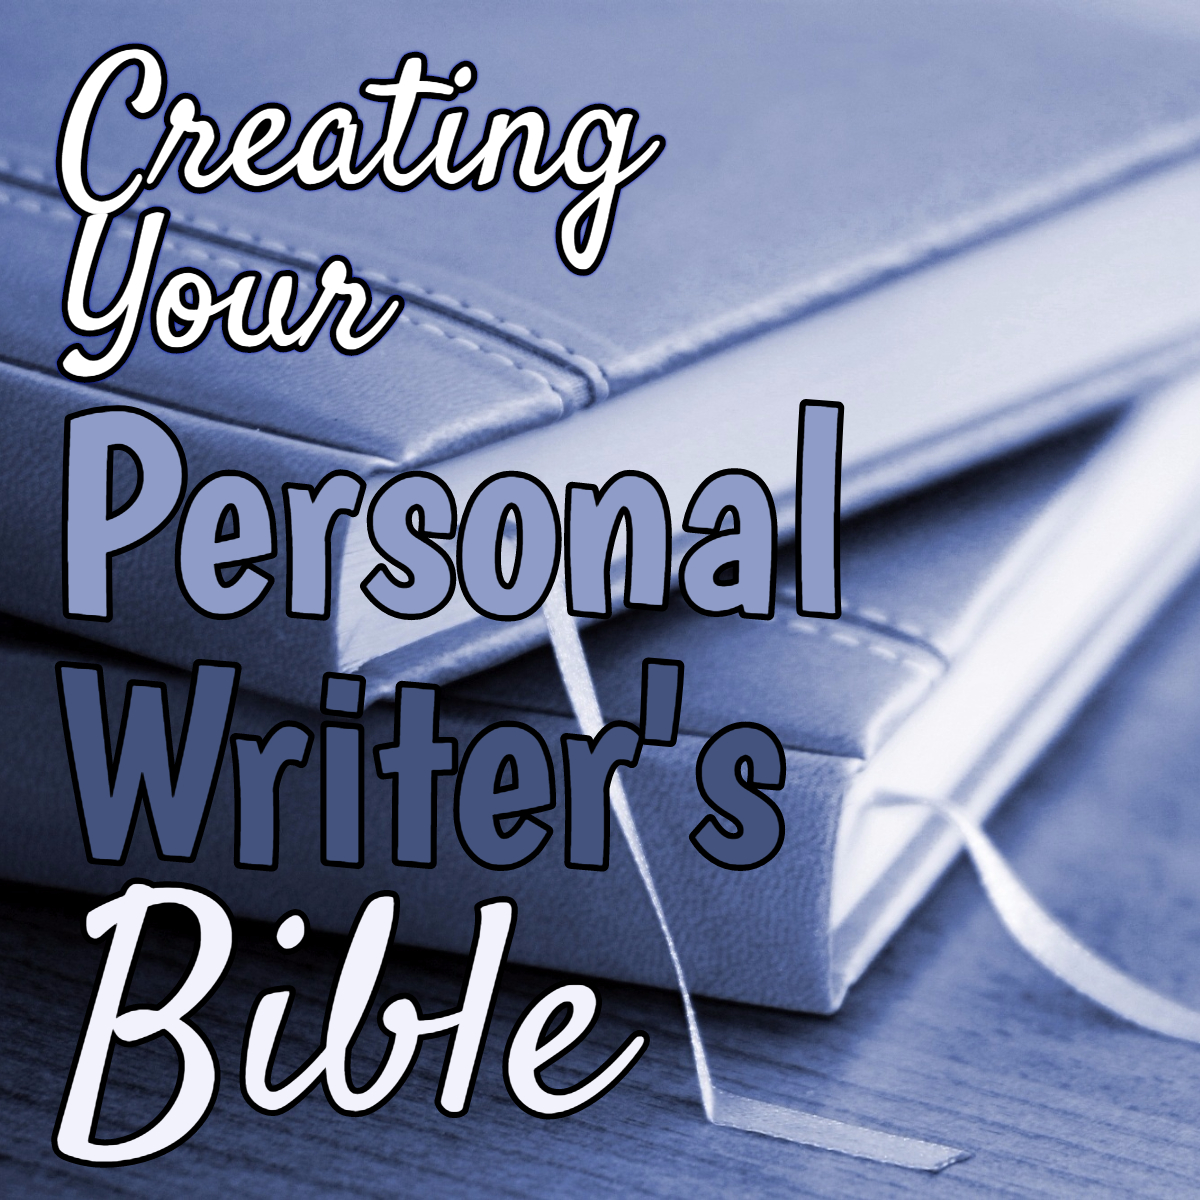 Personal writers